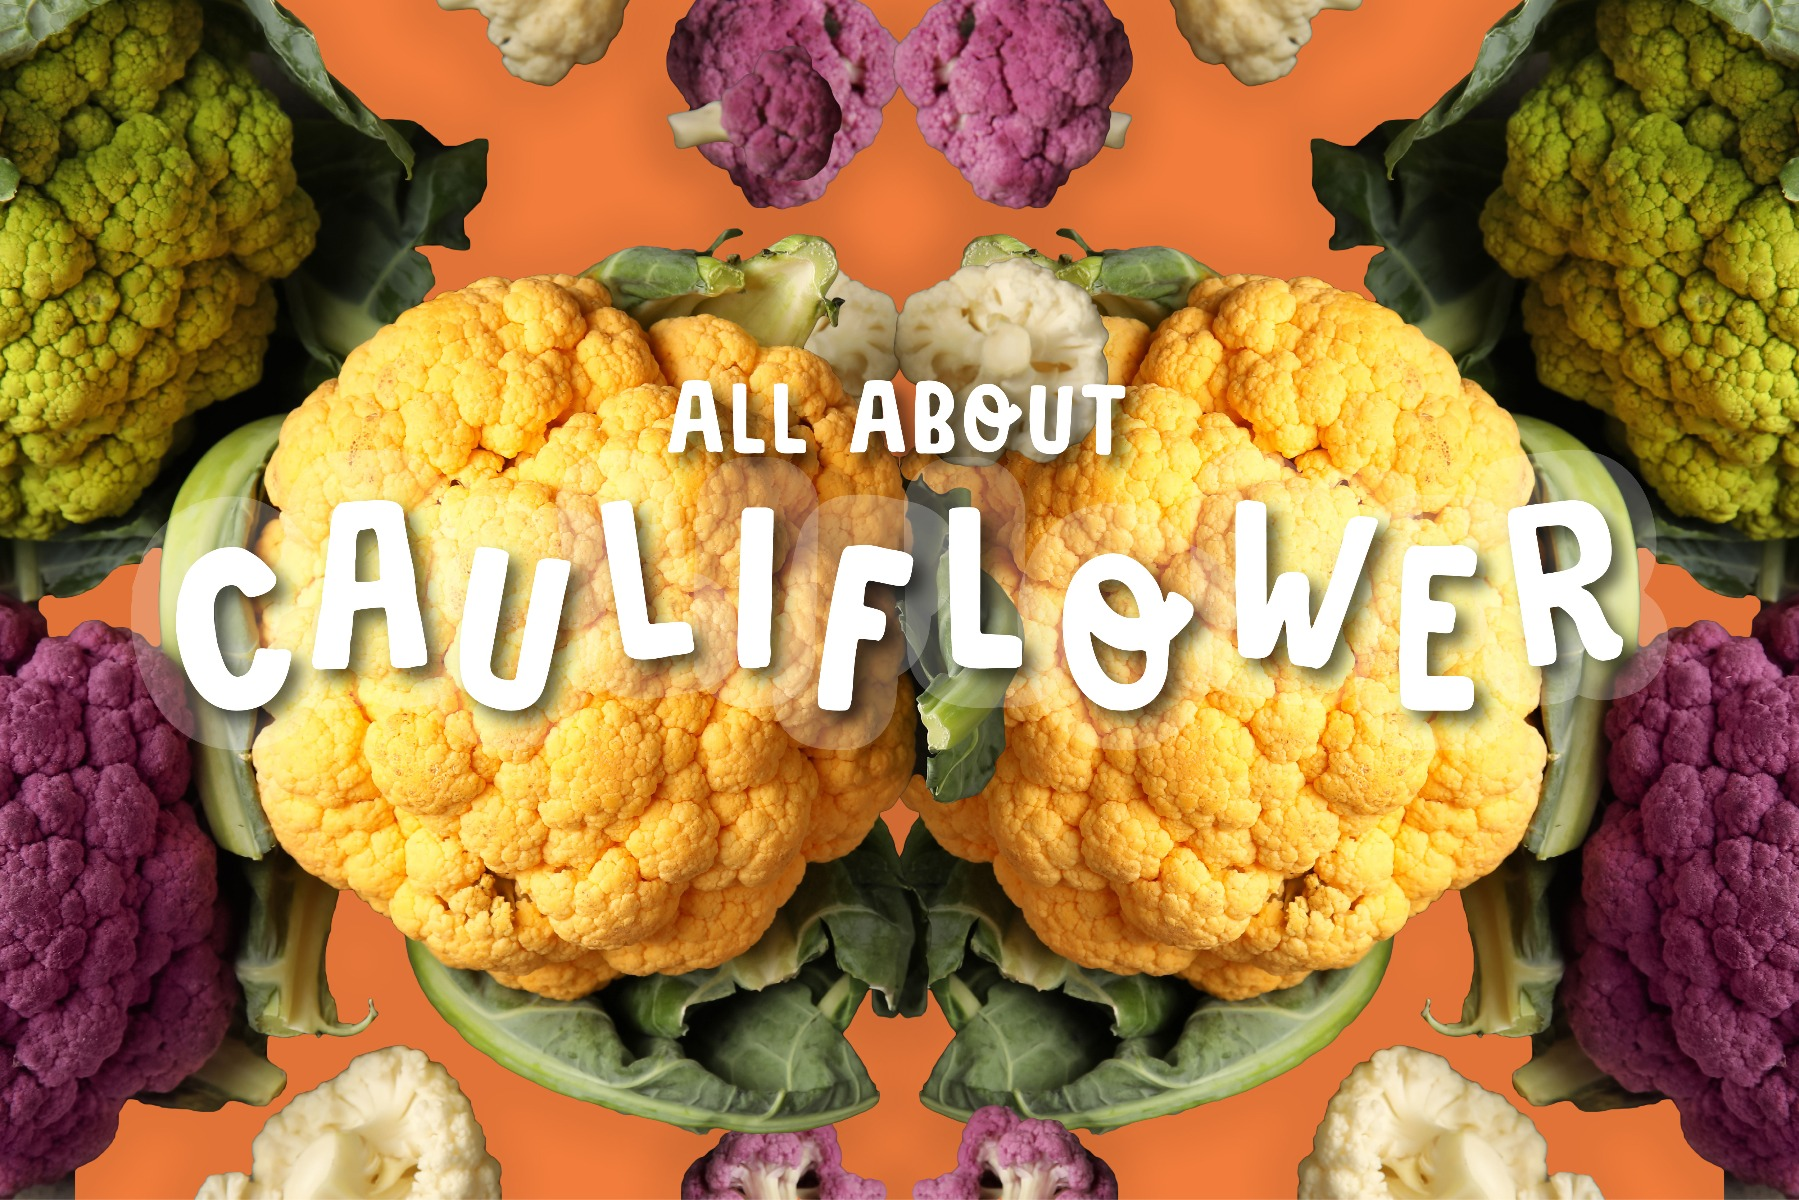 Cauliflower heads in different colours, yellow, green and purple